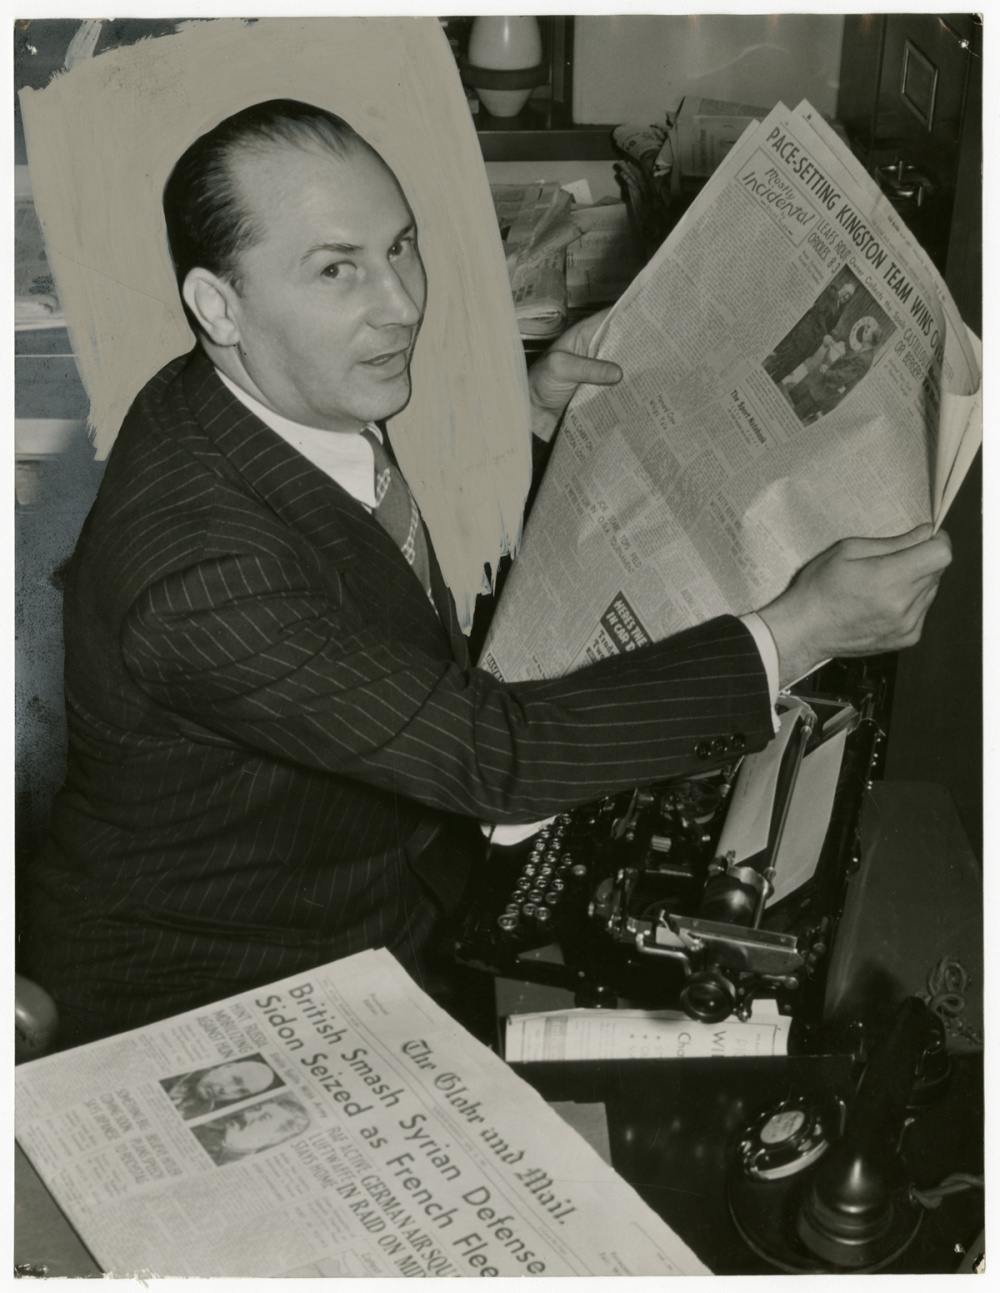 Unidentified photographer, Boxing great Benny Leonard reading The Globe and Mail sports section, c. 1945. Gelatin silver print, 9 × 6.5